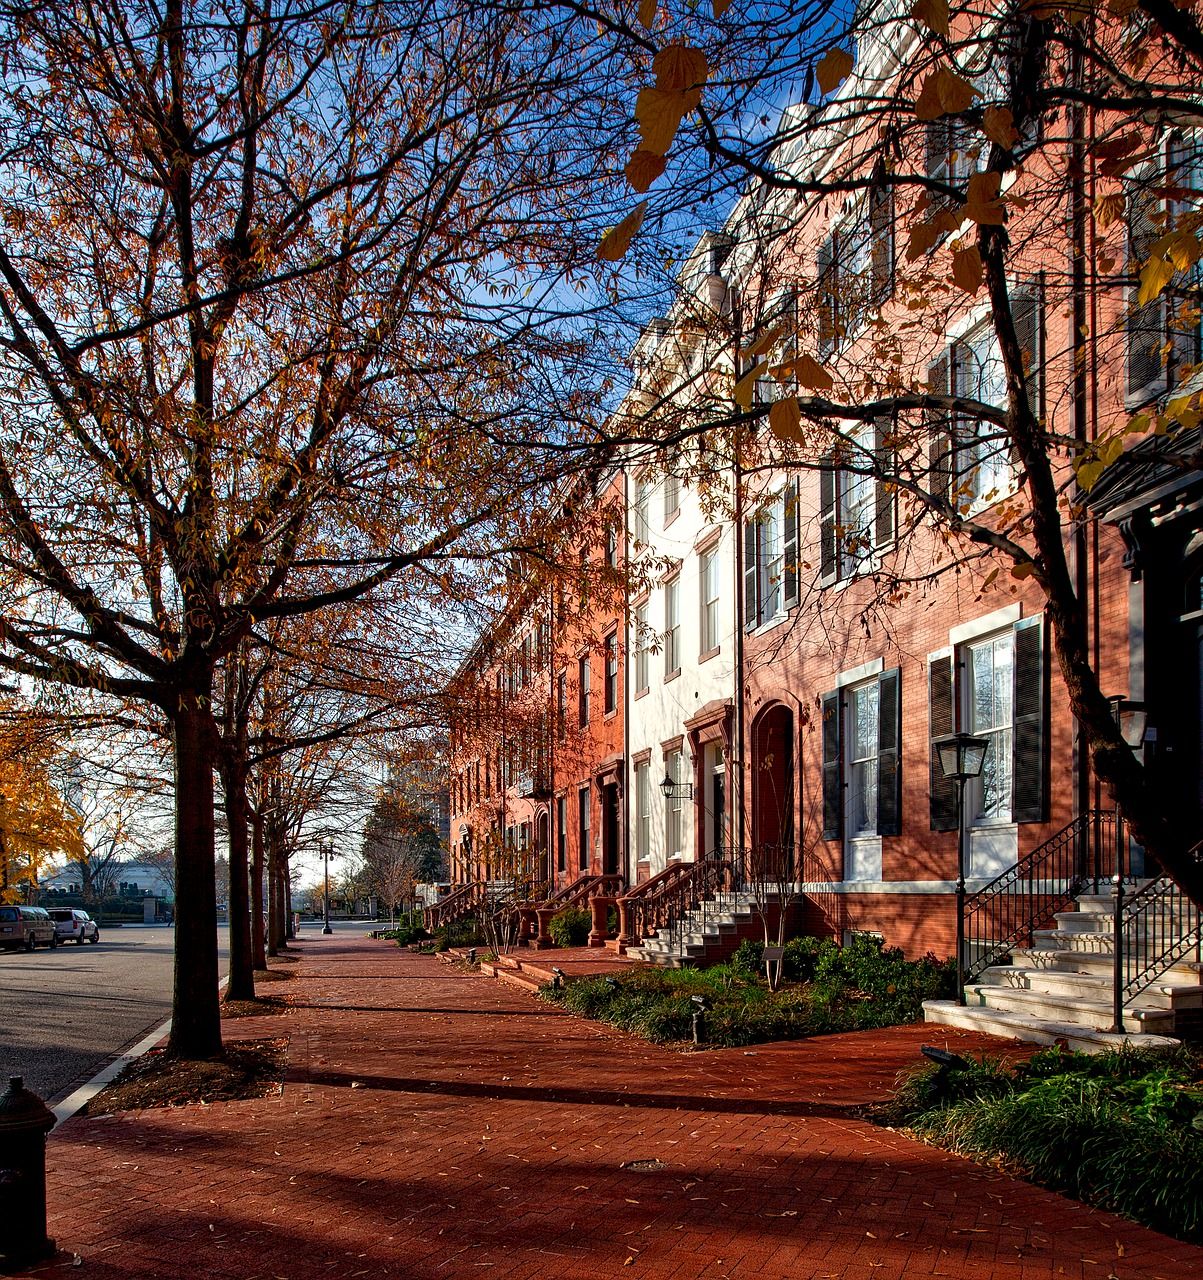 lafayette park,washington dc,c,architecture,historic,homes,houses,brownstones,row houses,pavement,sidewalk,upscale,landmarks,hdr,fall,autumn,trees,free pictures, free photos, free images, royalty free, free illustrations, public domain